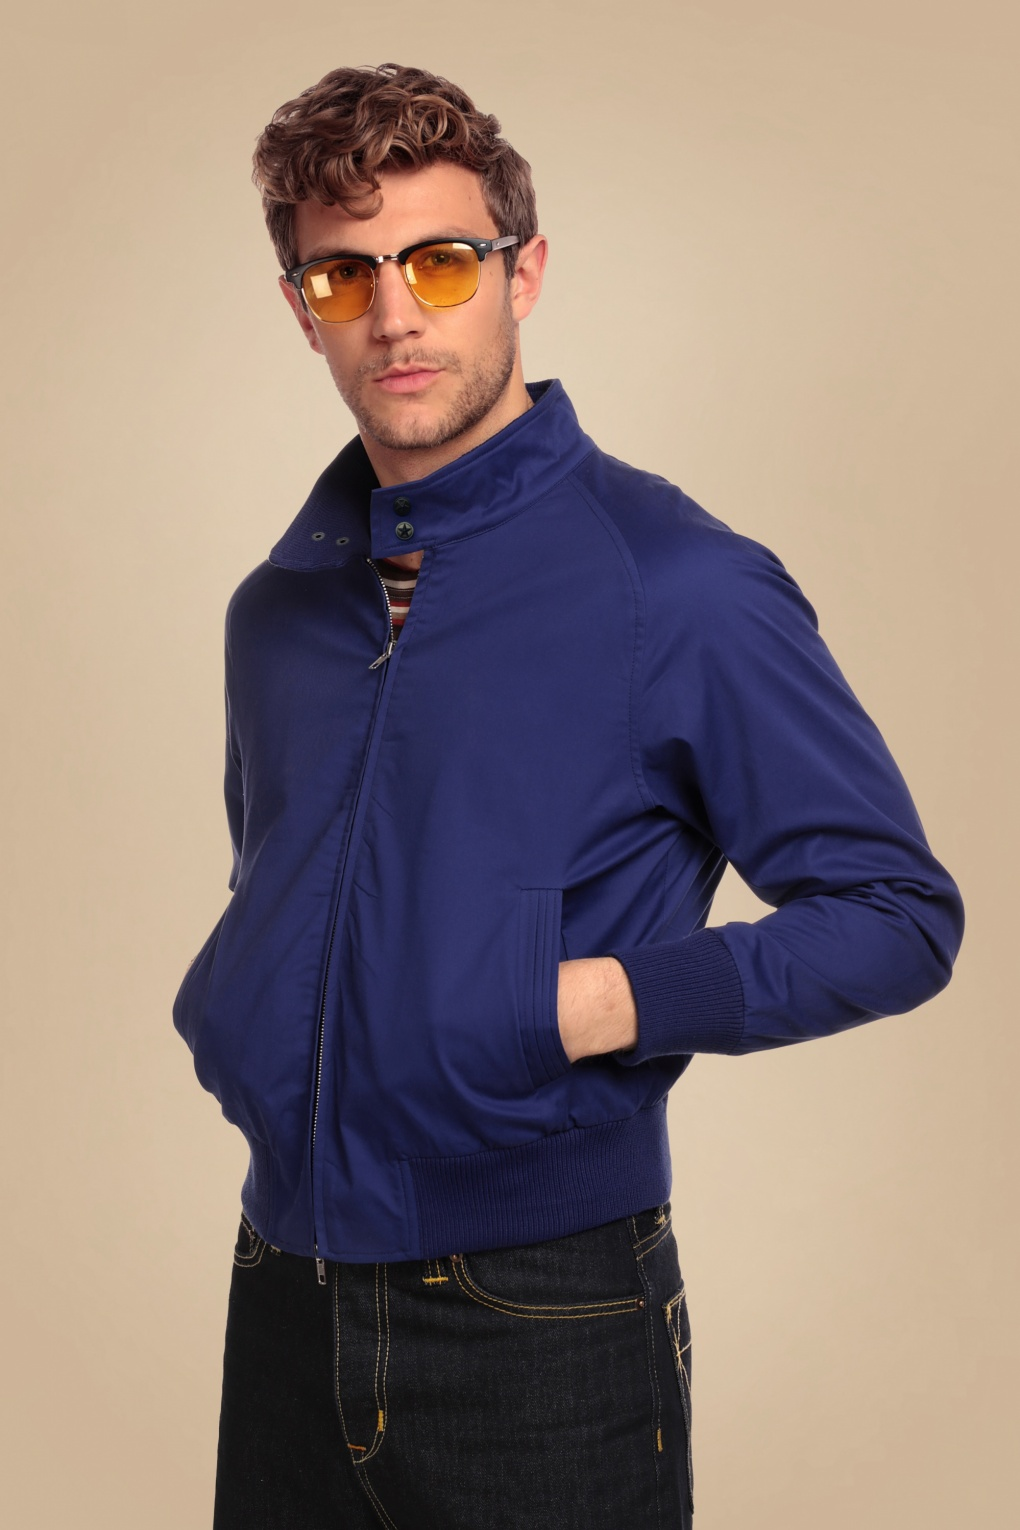 50s Men's Jackets| Greaser Jackets, Leather, Bomber, Gaberdine 50s Barry Plain Jacket in Blue £67.16 AT vintagedancer.com